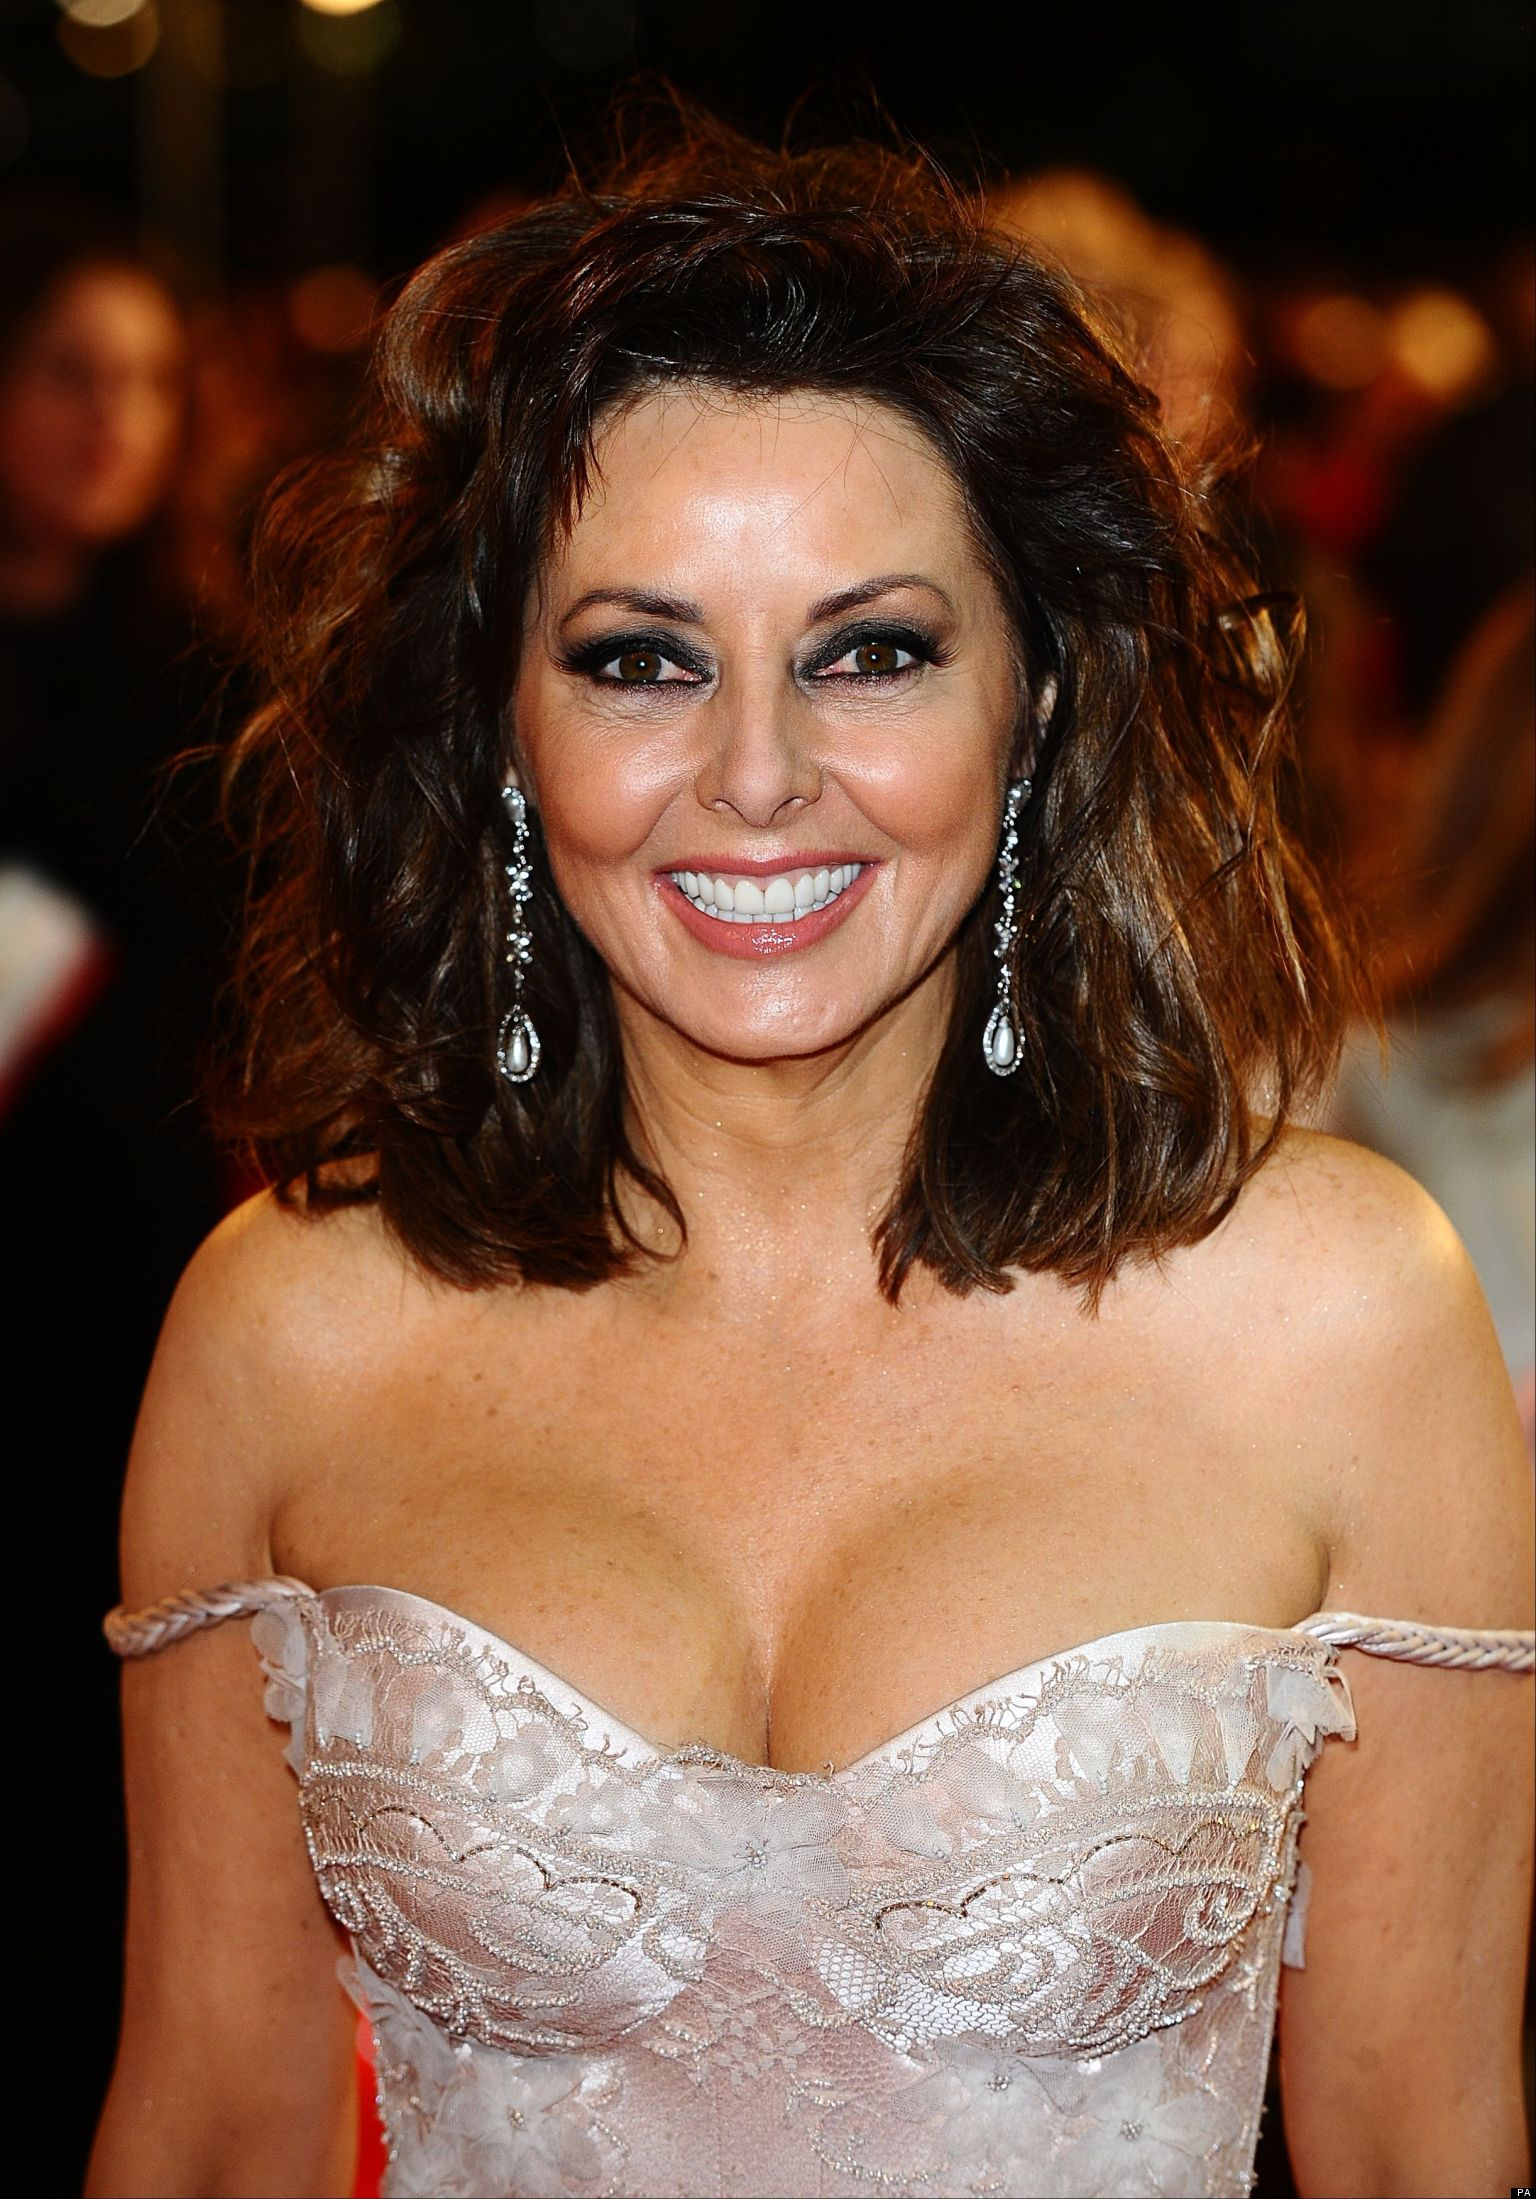 carol vorderman - photo #28